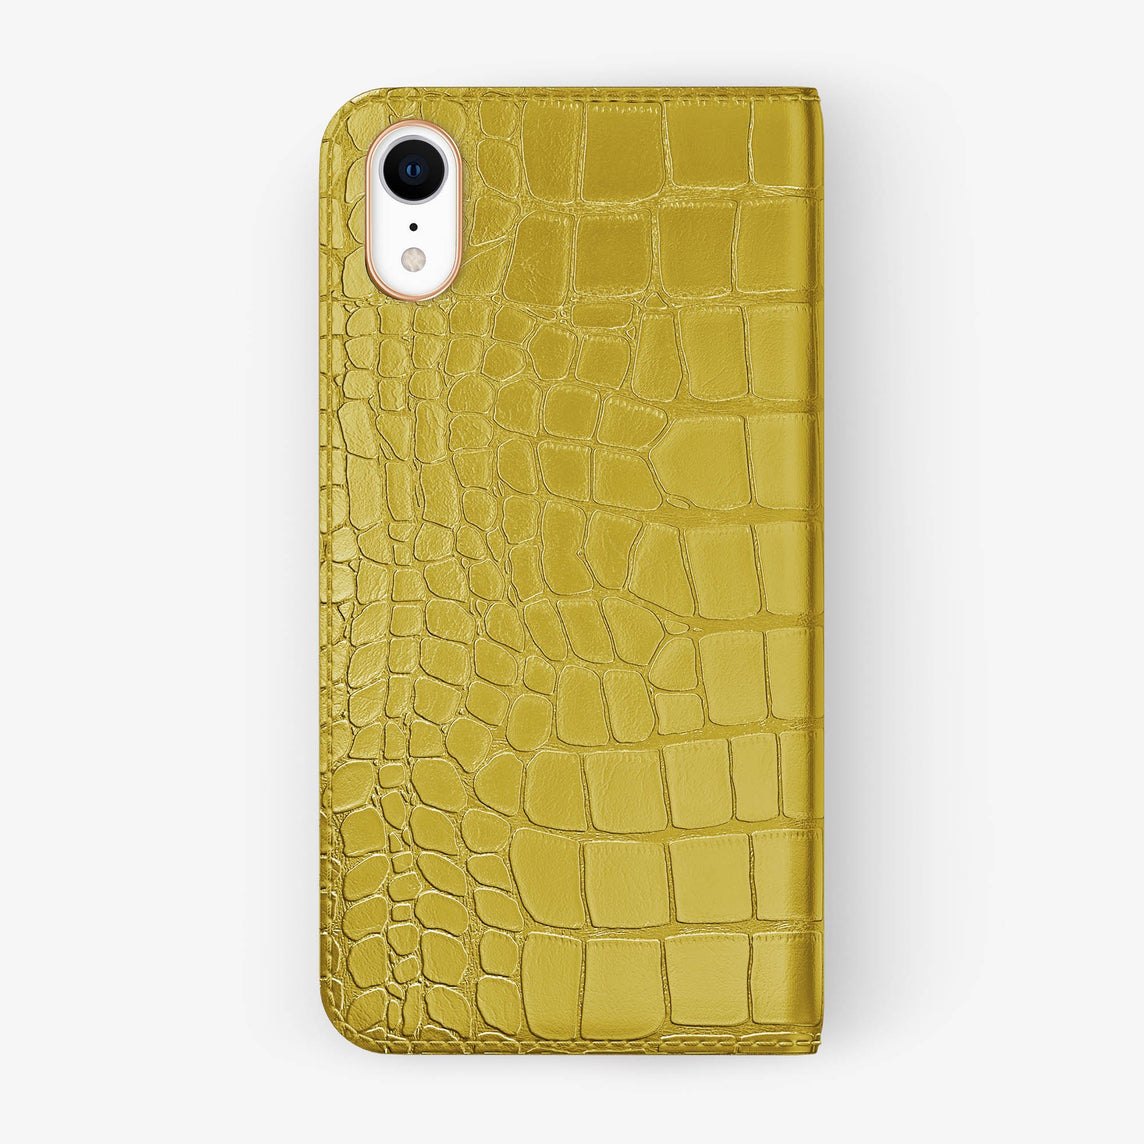 Alligator [iPhone Folio Case] [model:iphone-xr-case] [colour:yellow] [finishing:rose-gold]